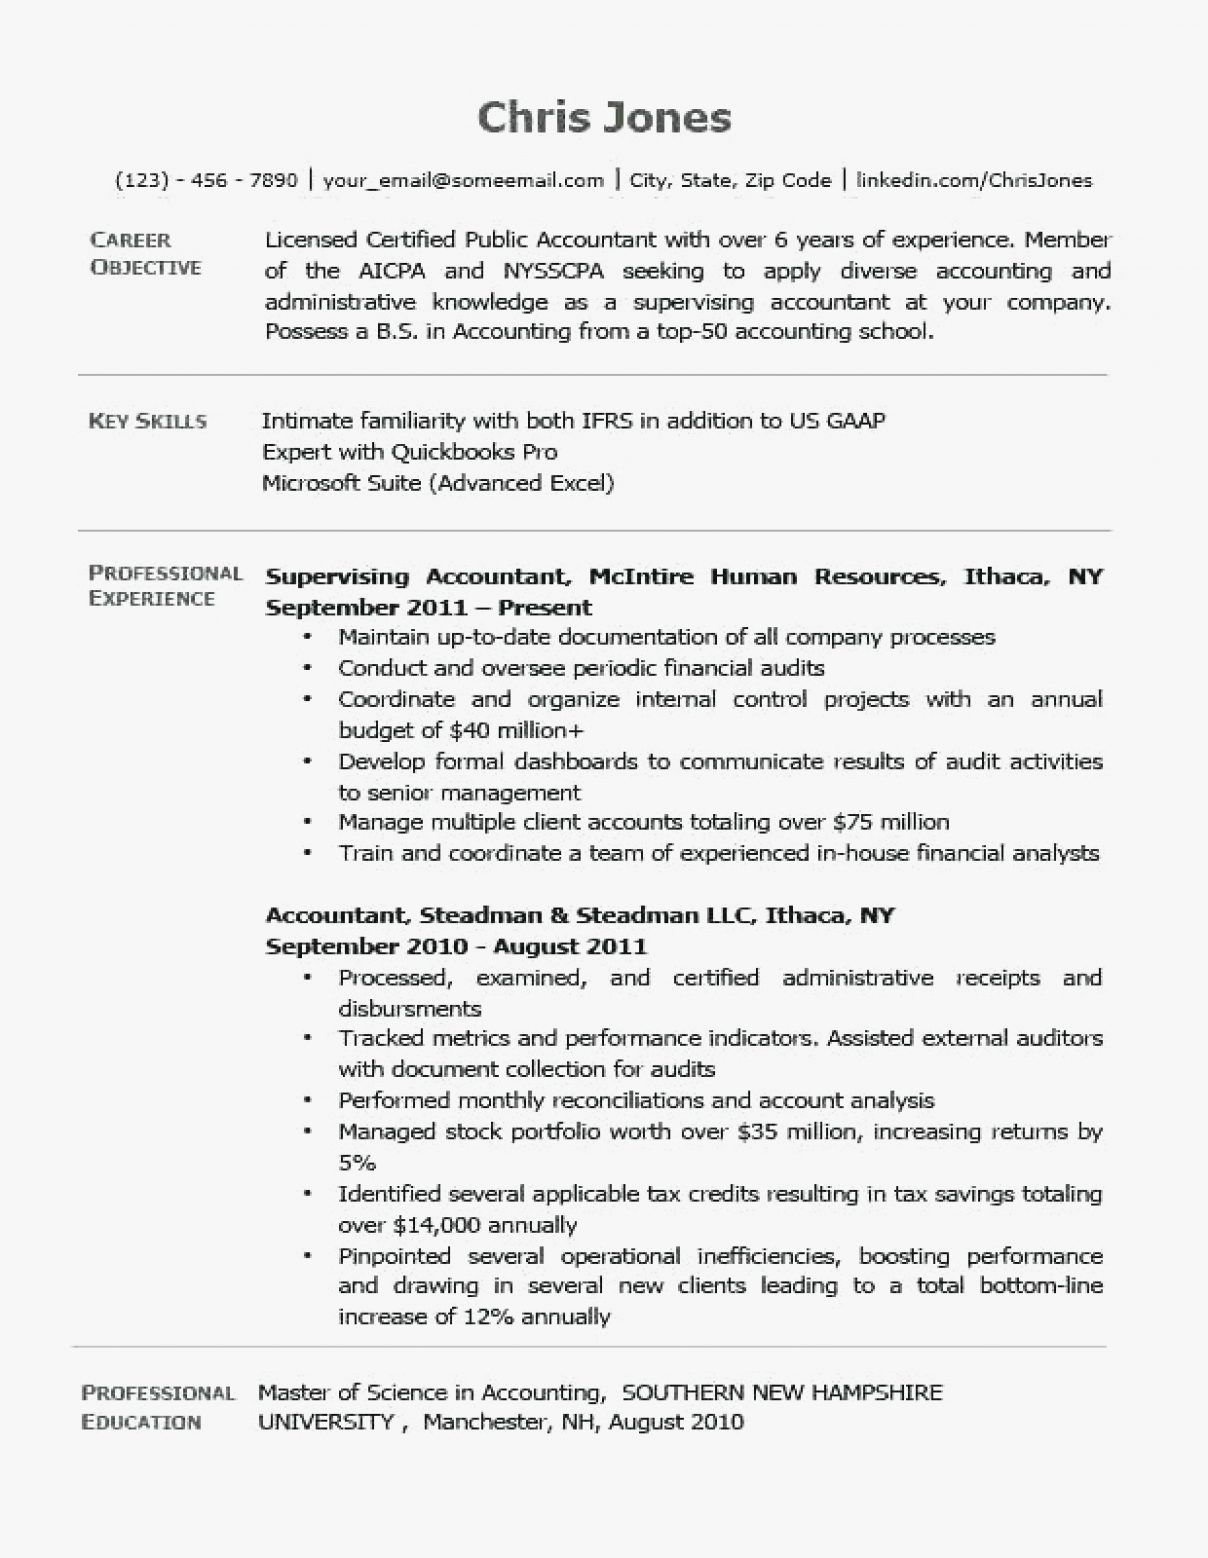 Objective For Resume Job Objective In Resumes Objectives Resume How Write A With No Experience Achievements For Examples Accomplishment Hr Career Full Or 1208x1558 objective for resume|wikiresume.com